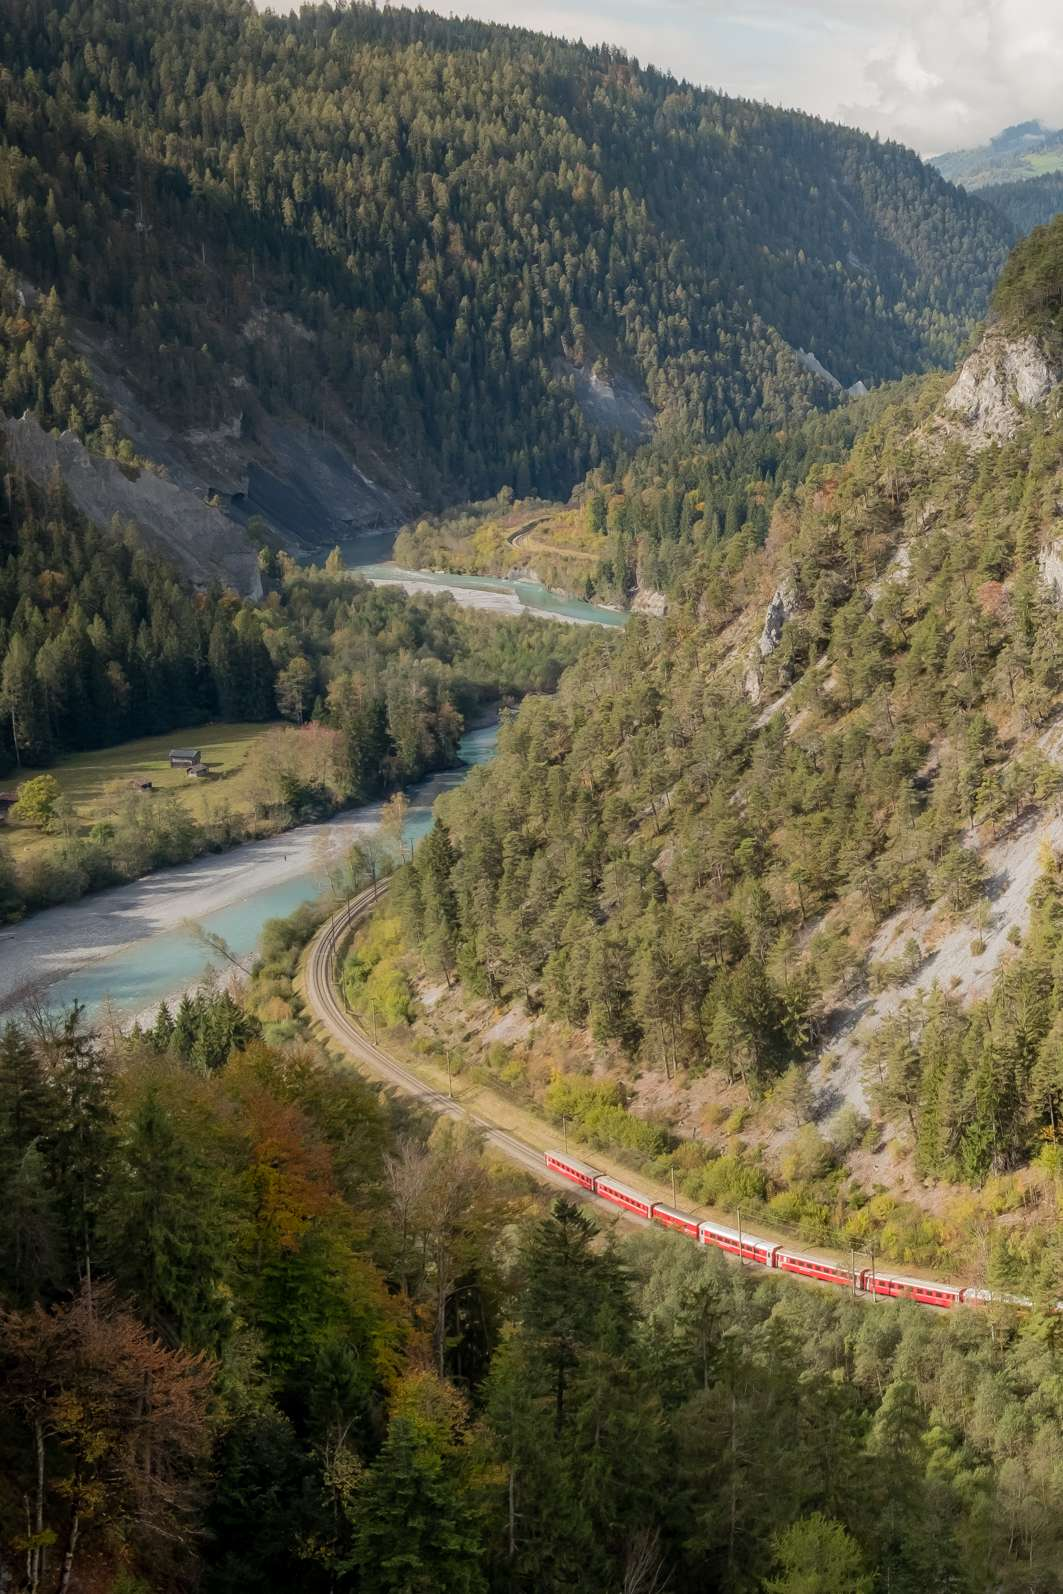 The Glacier Express train in the Grand Canyon of Switzerland, weaving through the valley next to the chalk coloured Rhine